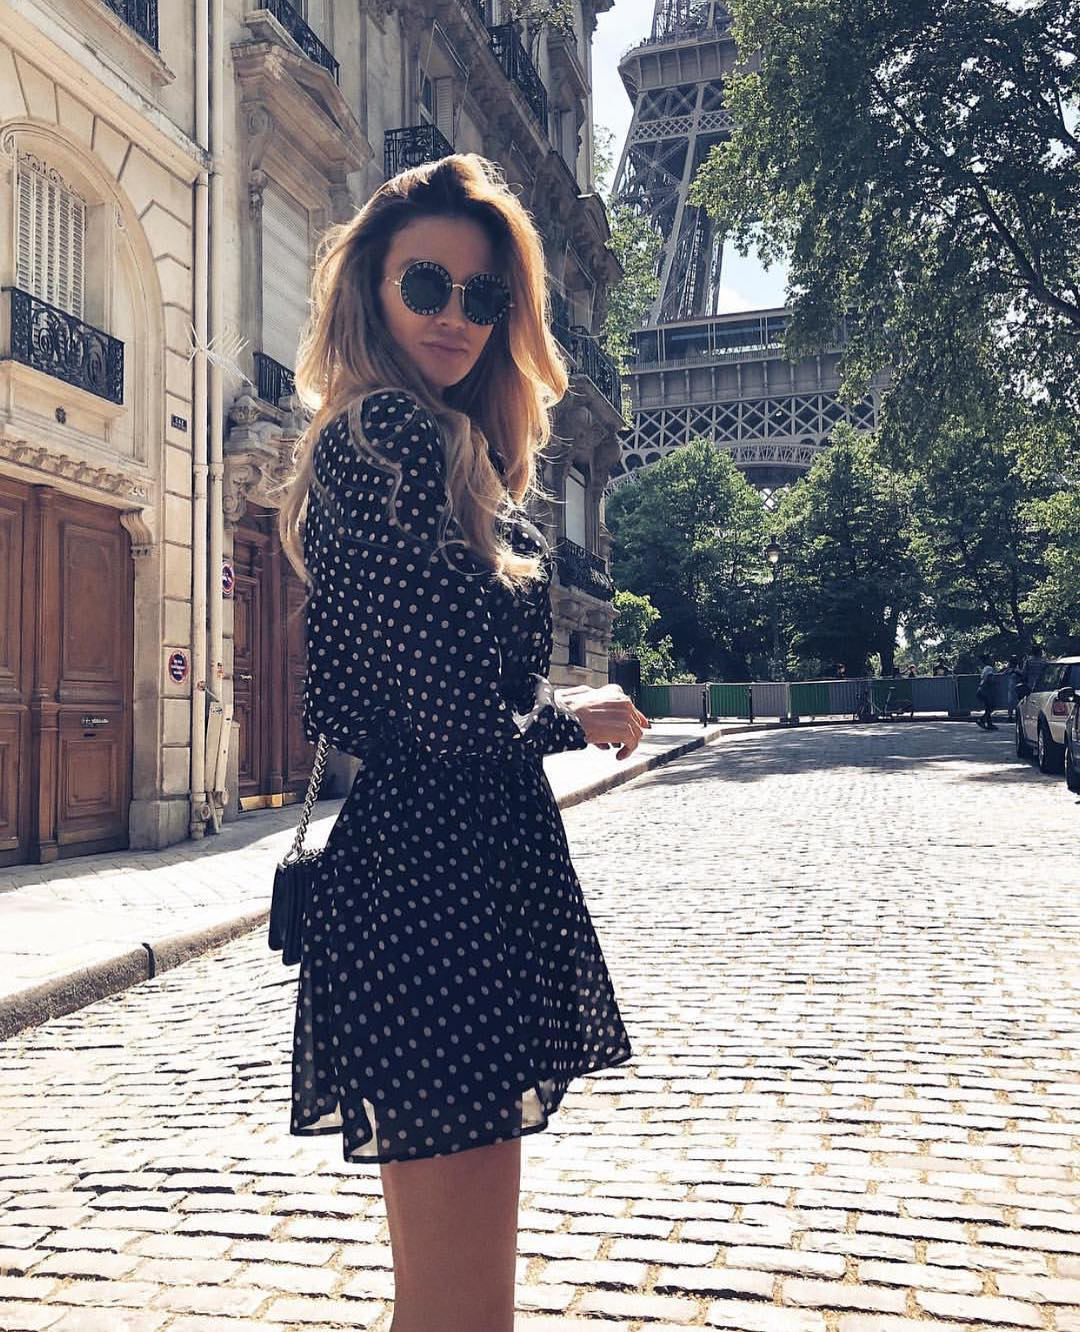 Dotted Black Dress To Wear In Paris This Summer 2021